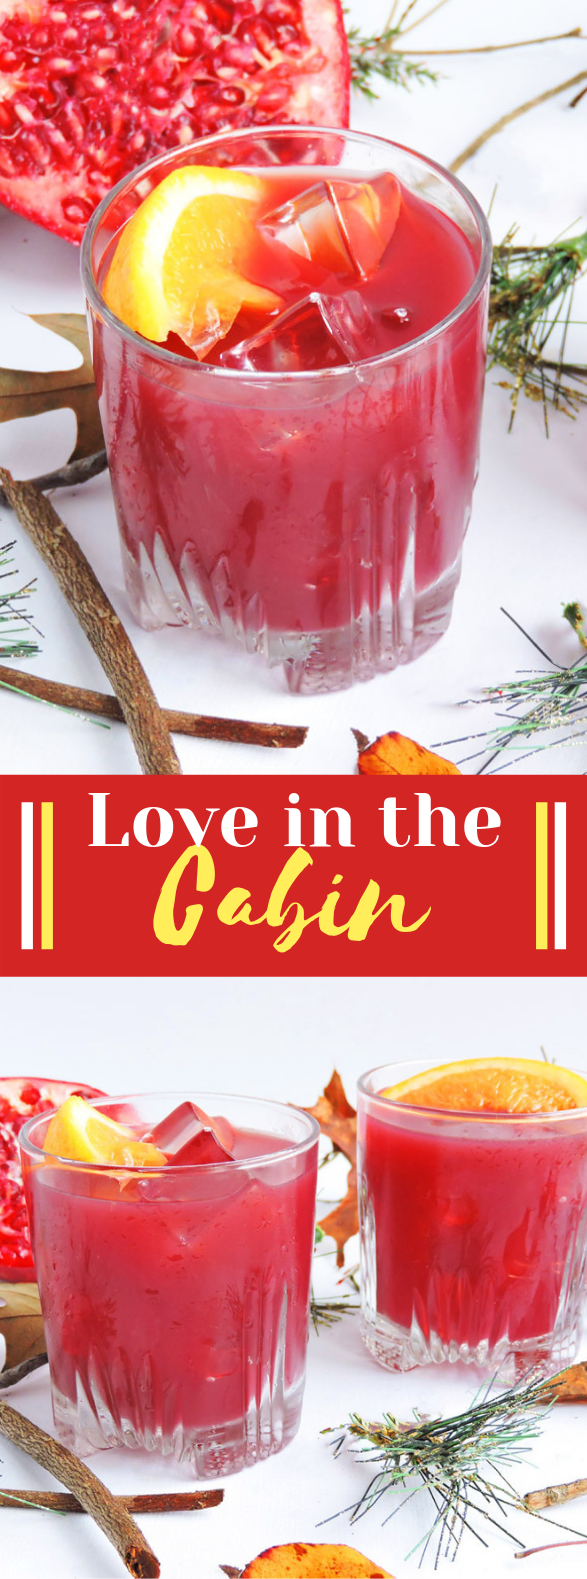 Love in the Cabin Cocktail #drinks #christmas